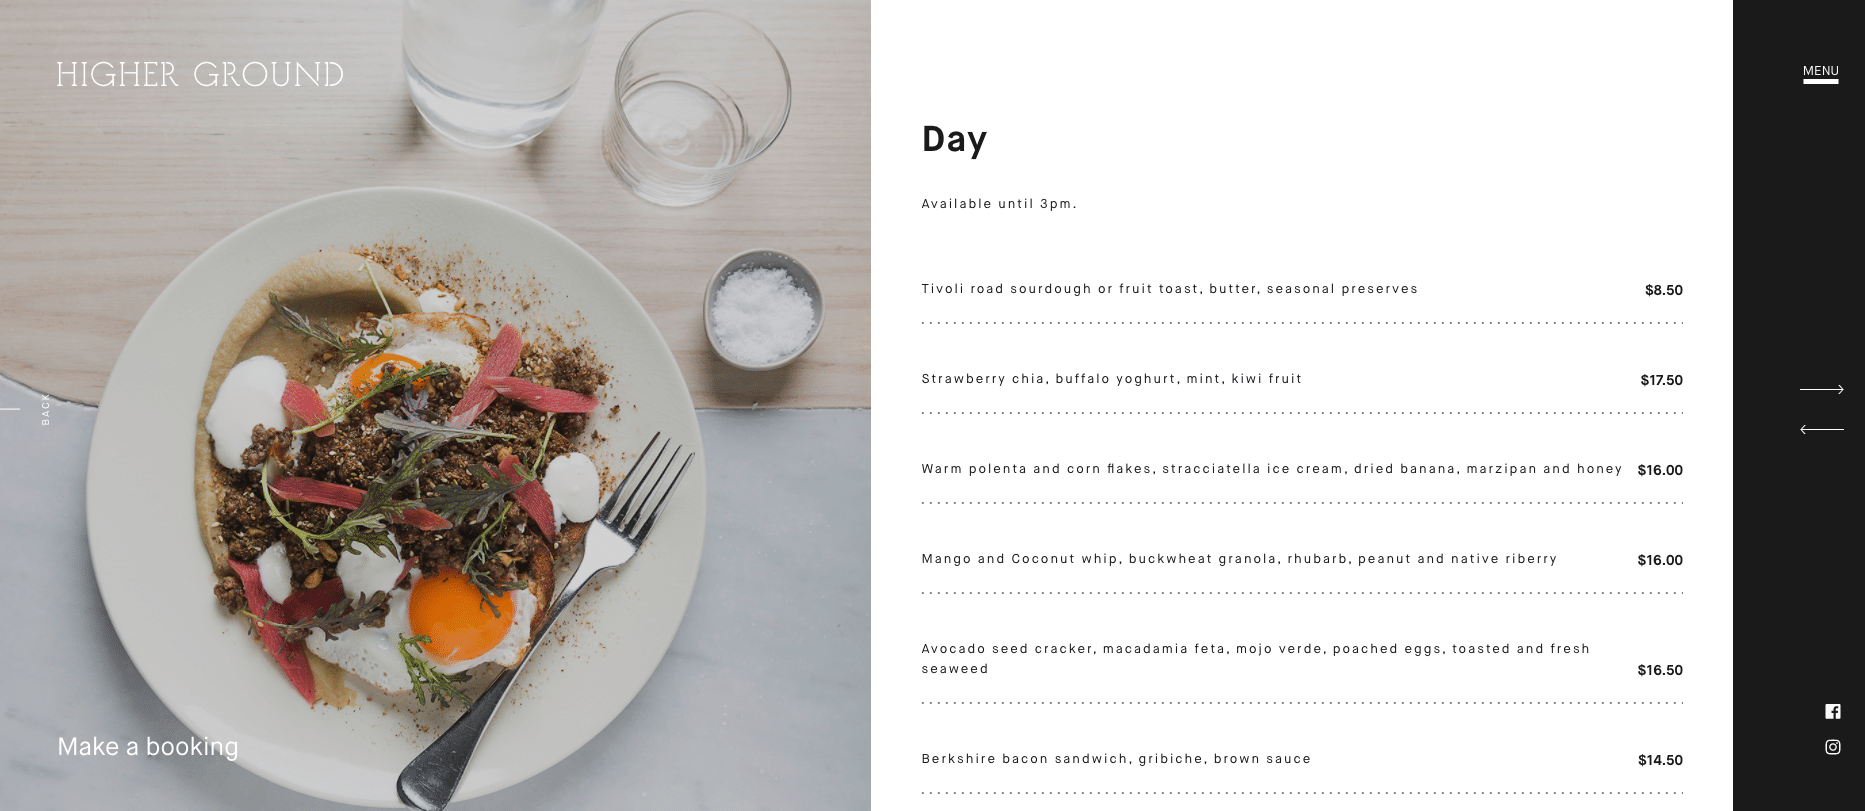 higher-ground-cafe-restaurant-provides-visual-menu-on-website